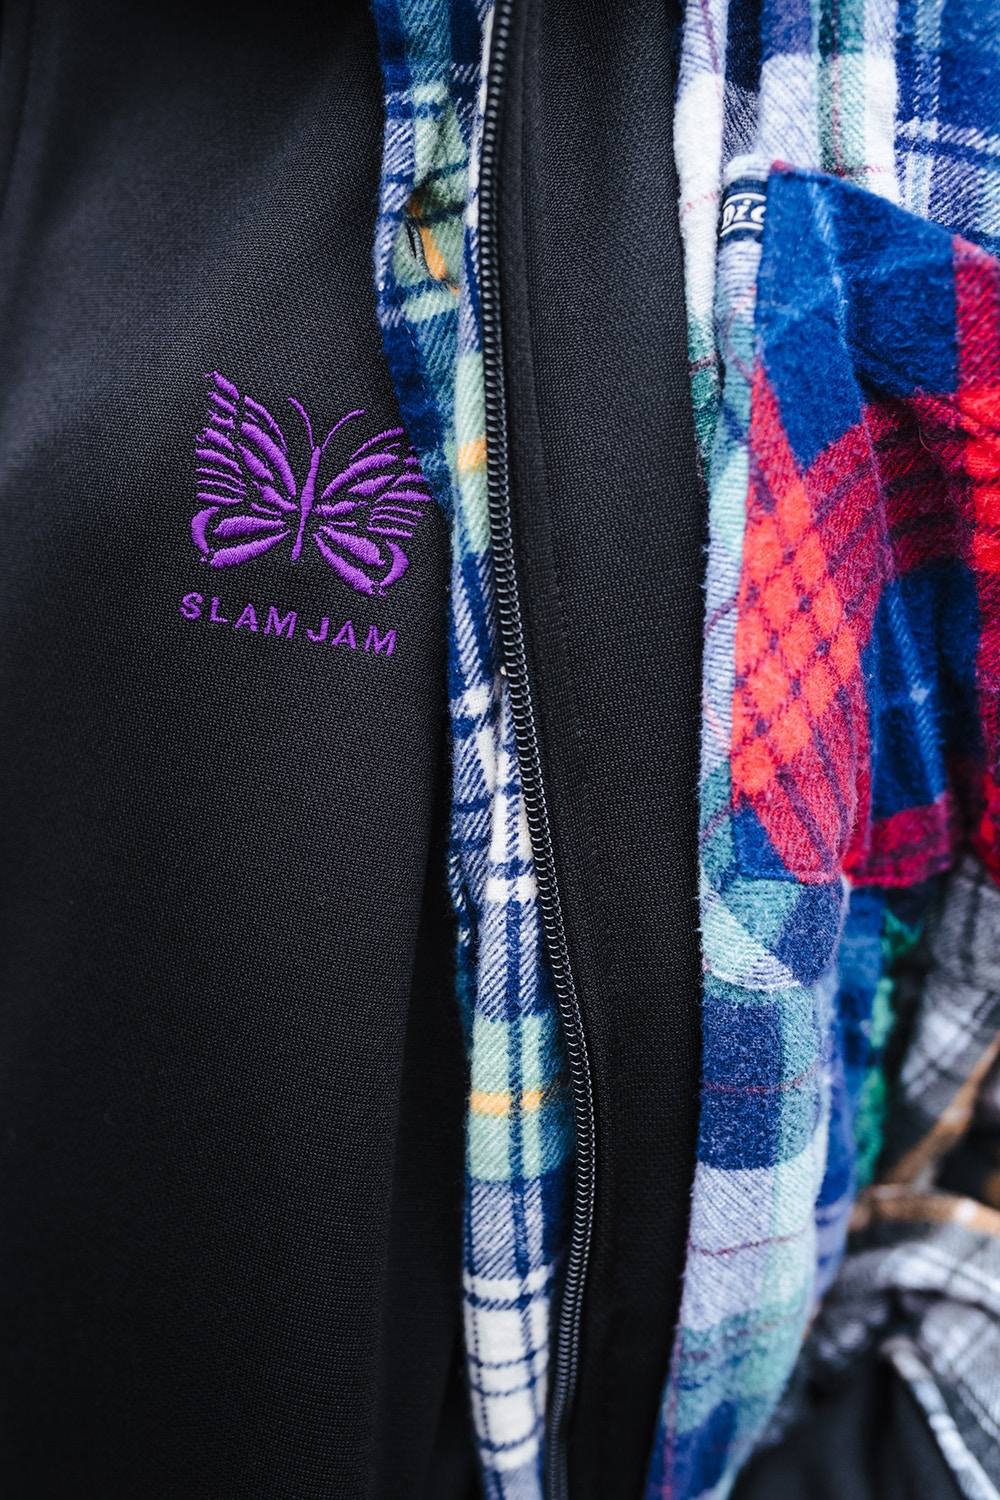 slam-jam-nepenthes-editorial-track-suit-8.jpg